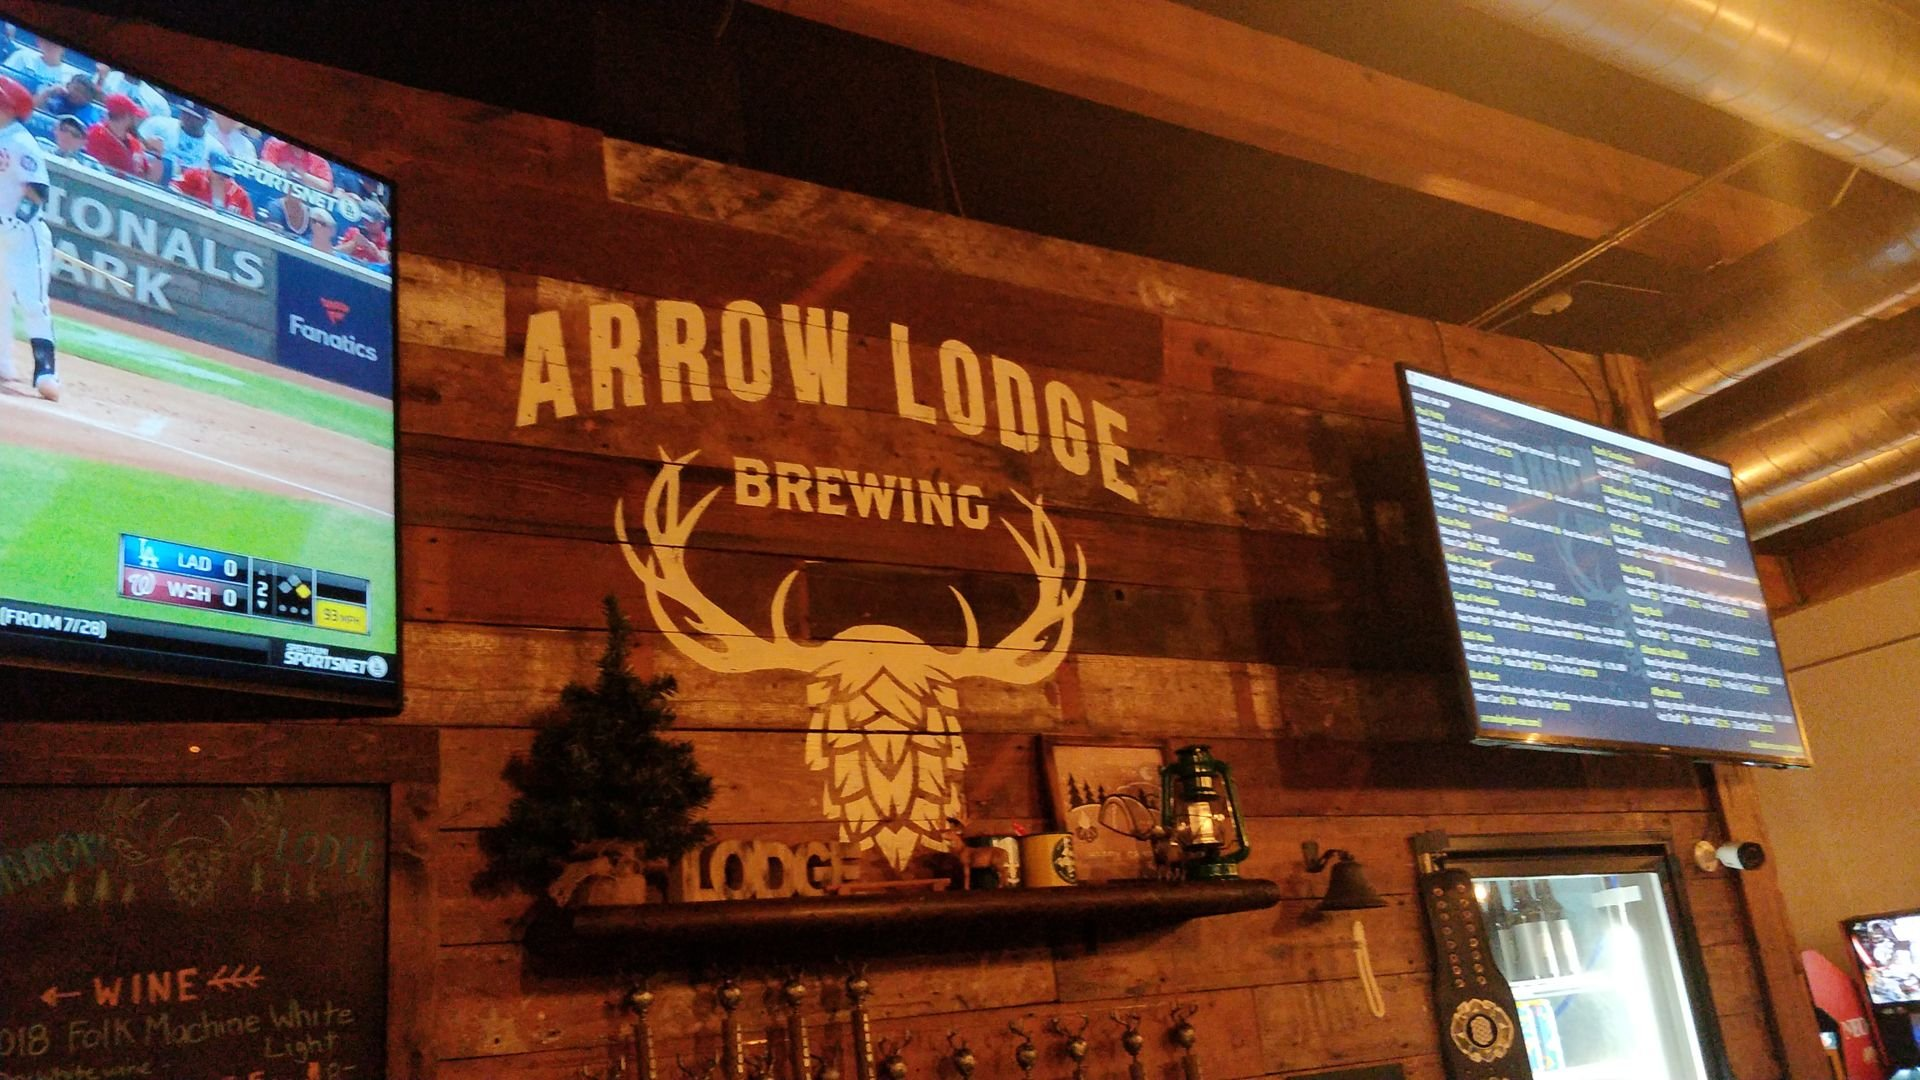 Arrow Lodge logo at the bar